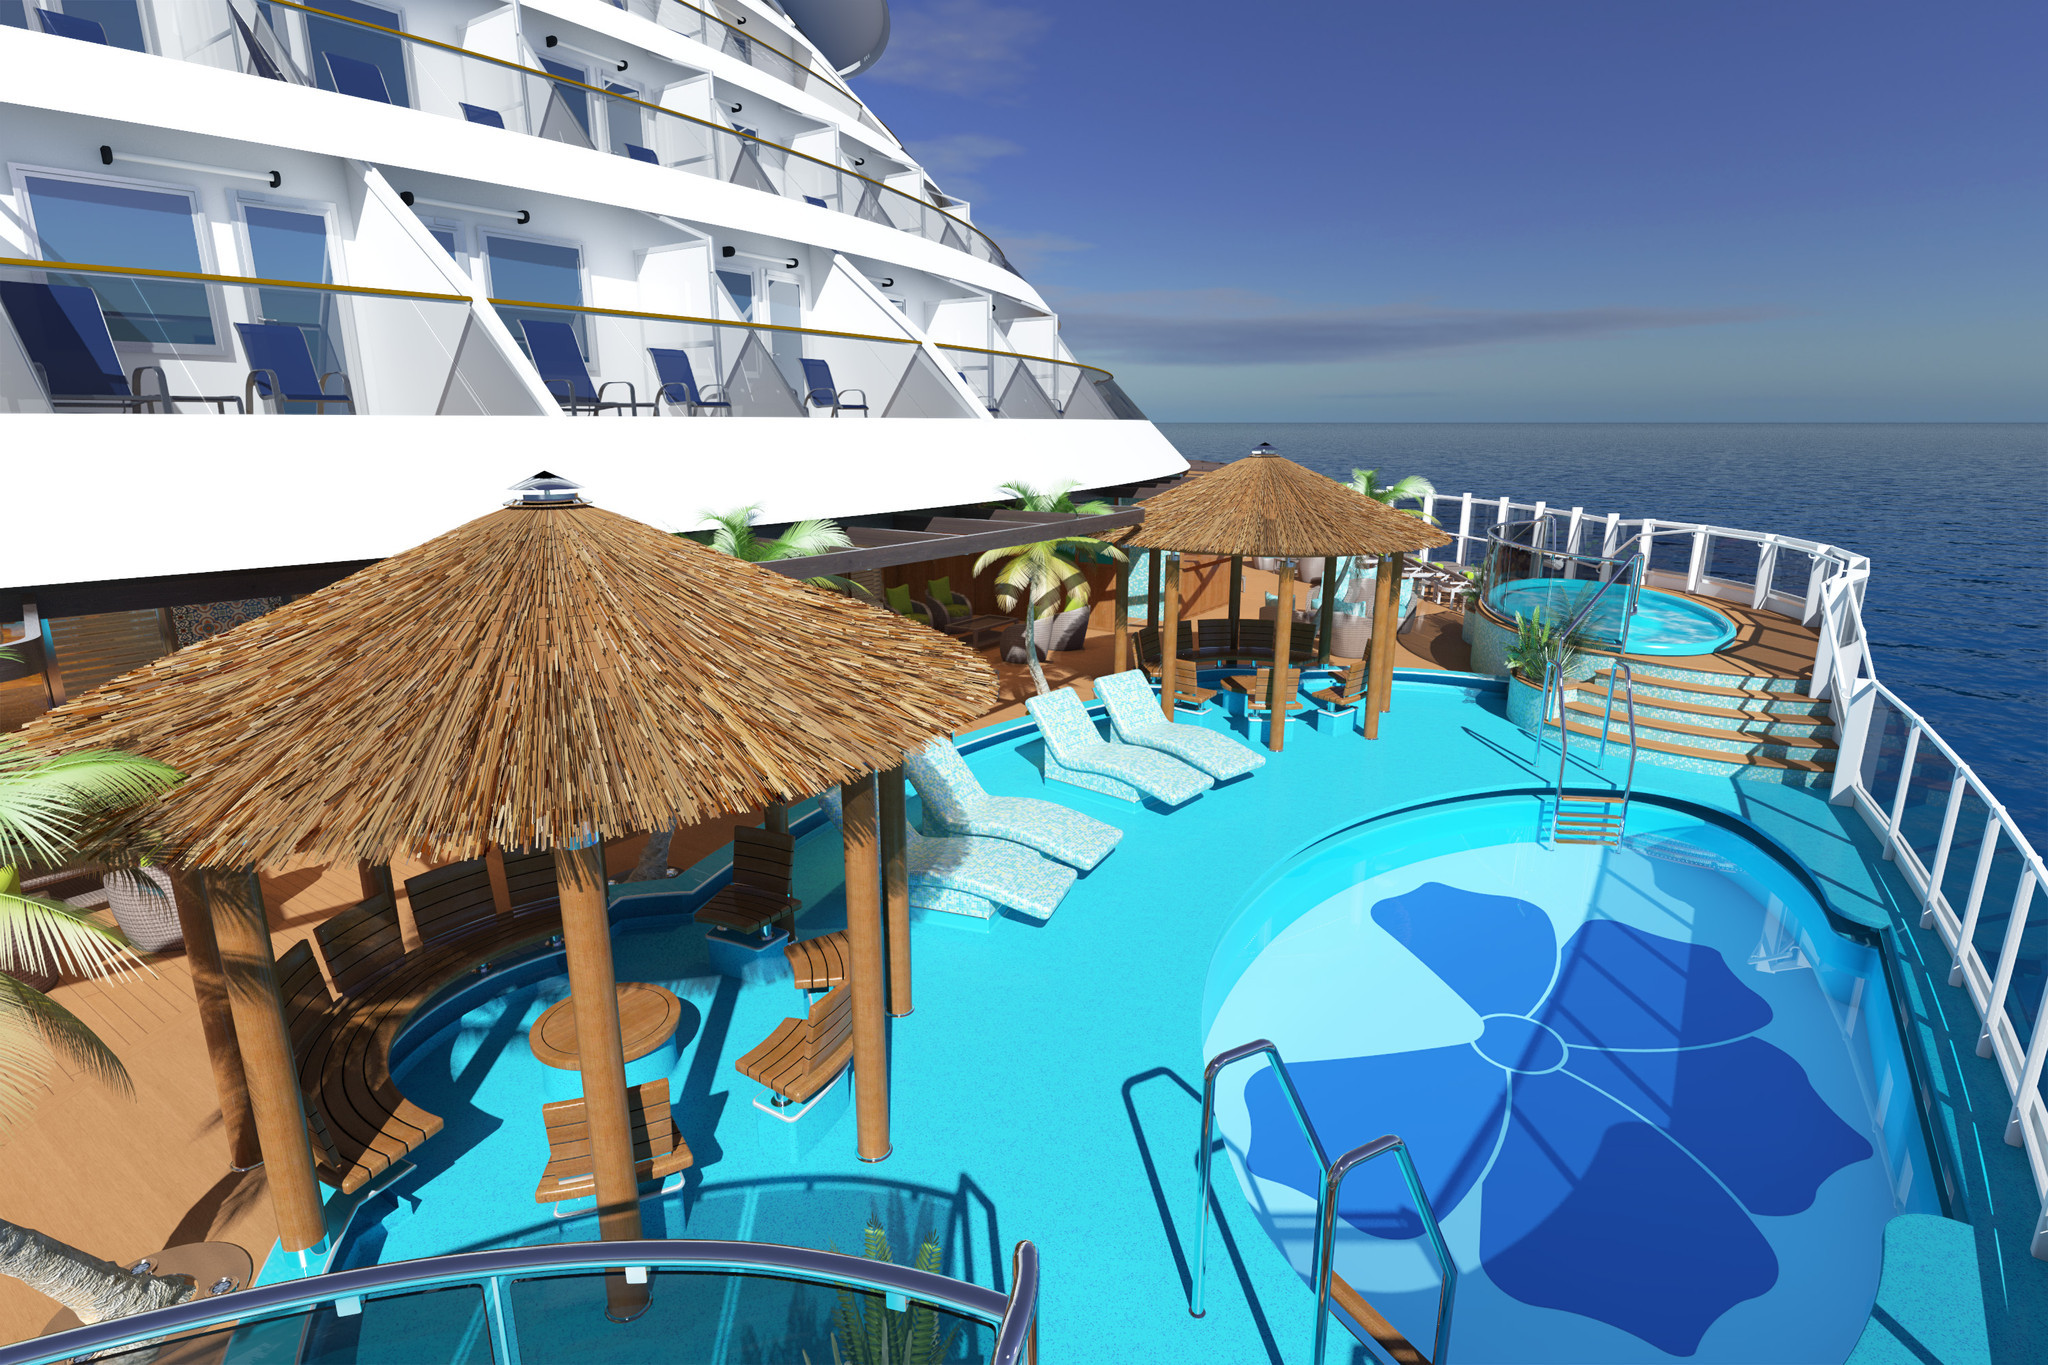 Imax Theater Water Park And Pool Cabanas On New Carnival Vista La Times